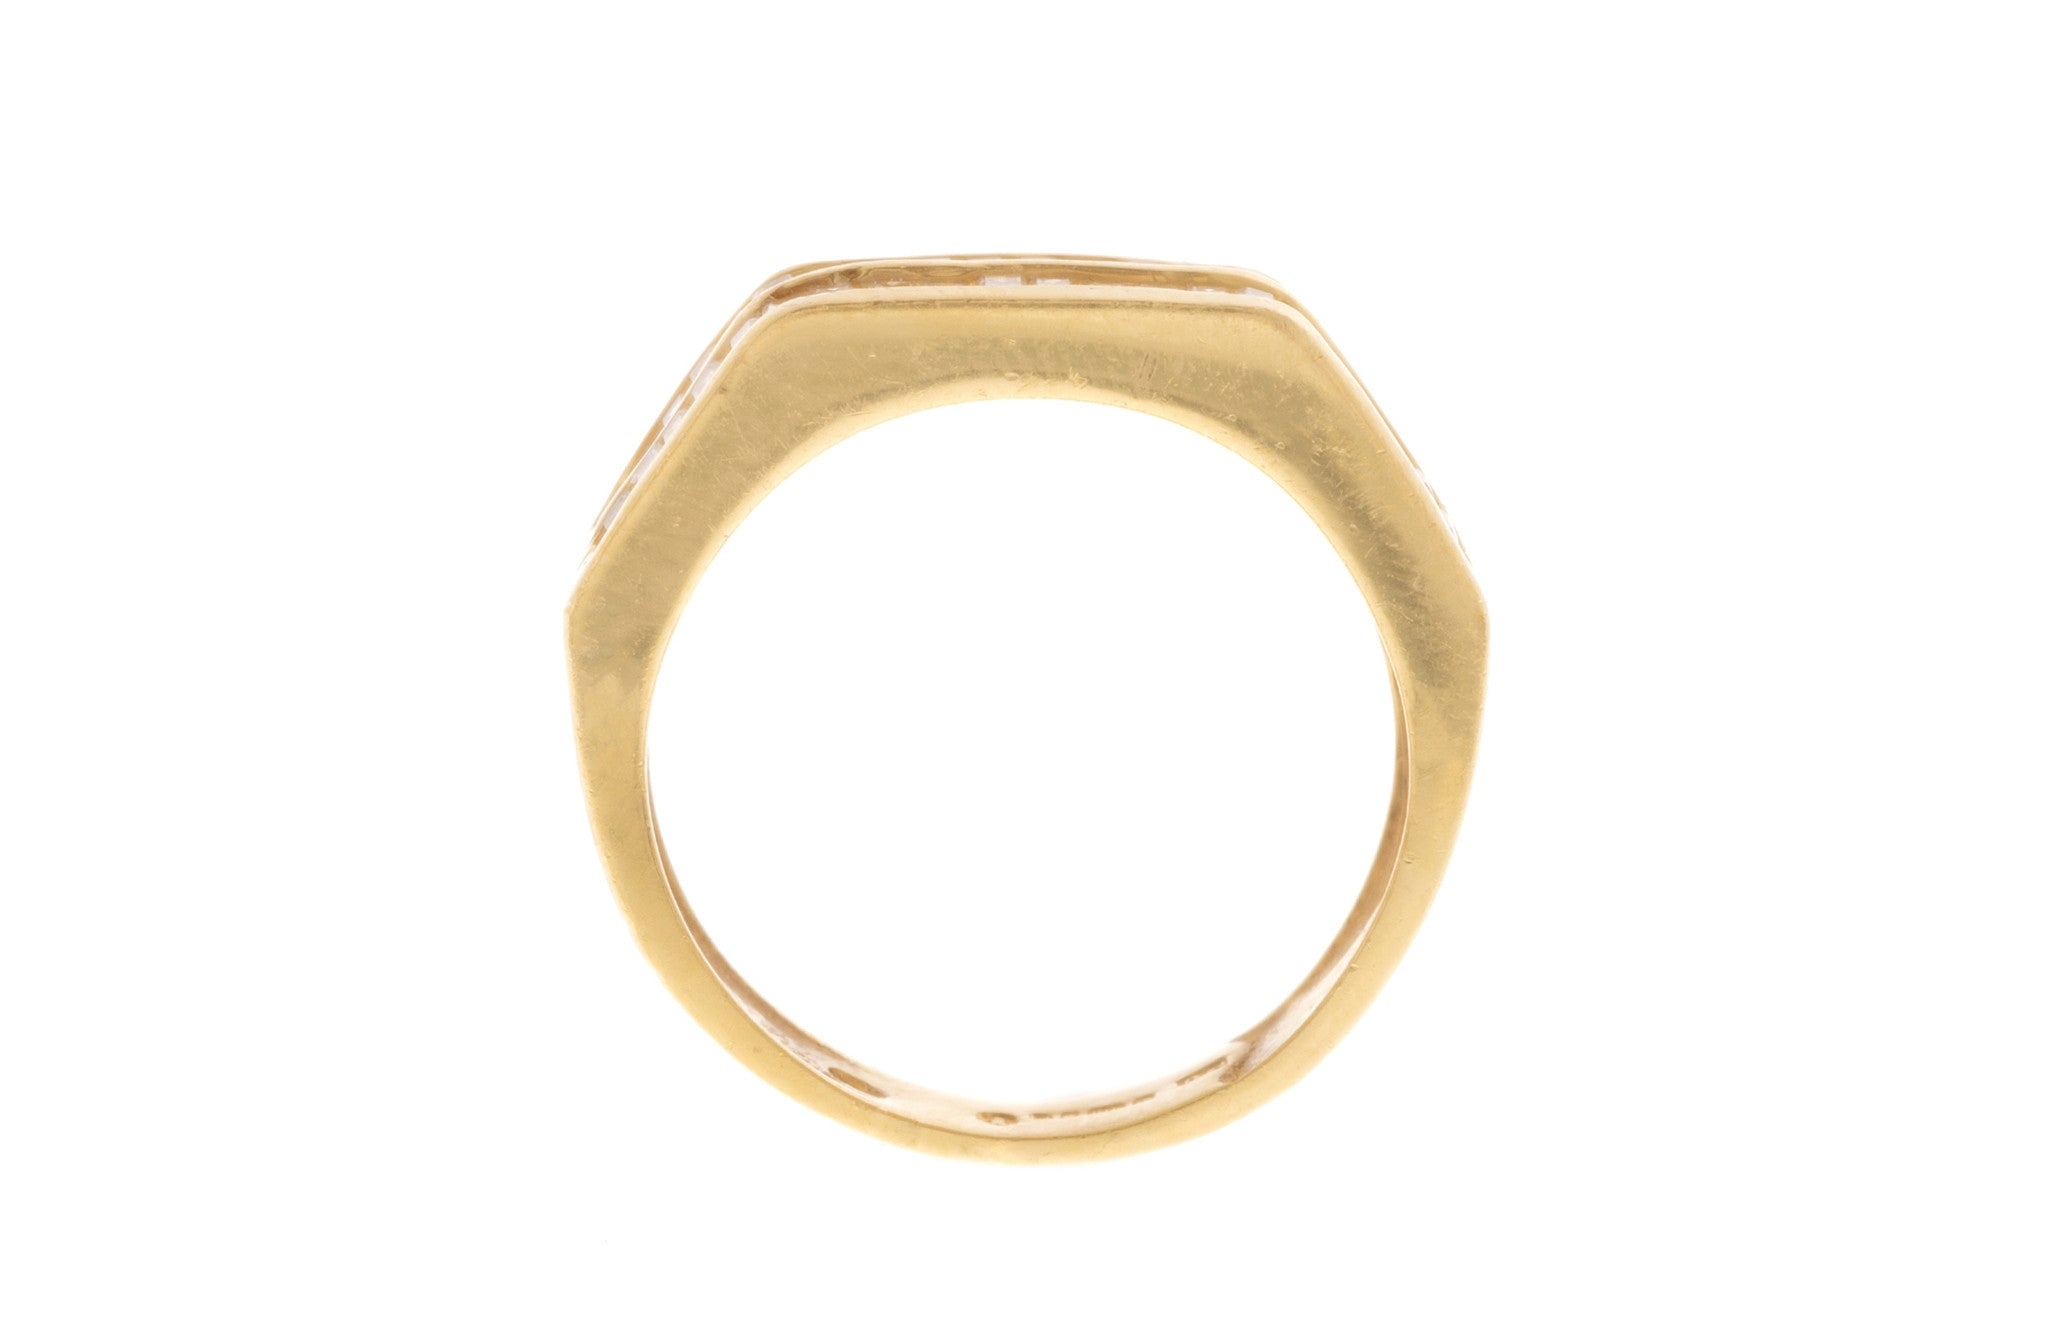 22ct Yellow Gold Cubic Zirconia Dress Ring, Minar Jewellers - 5